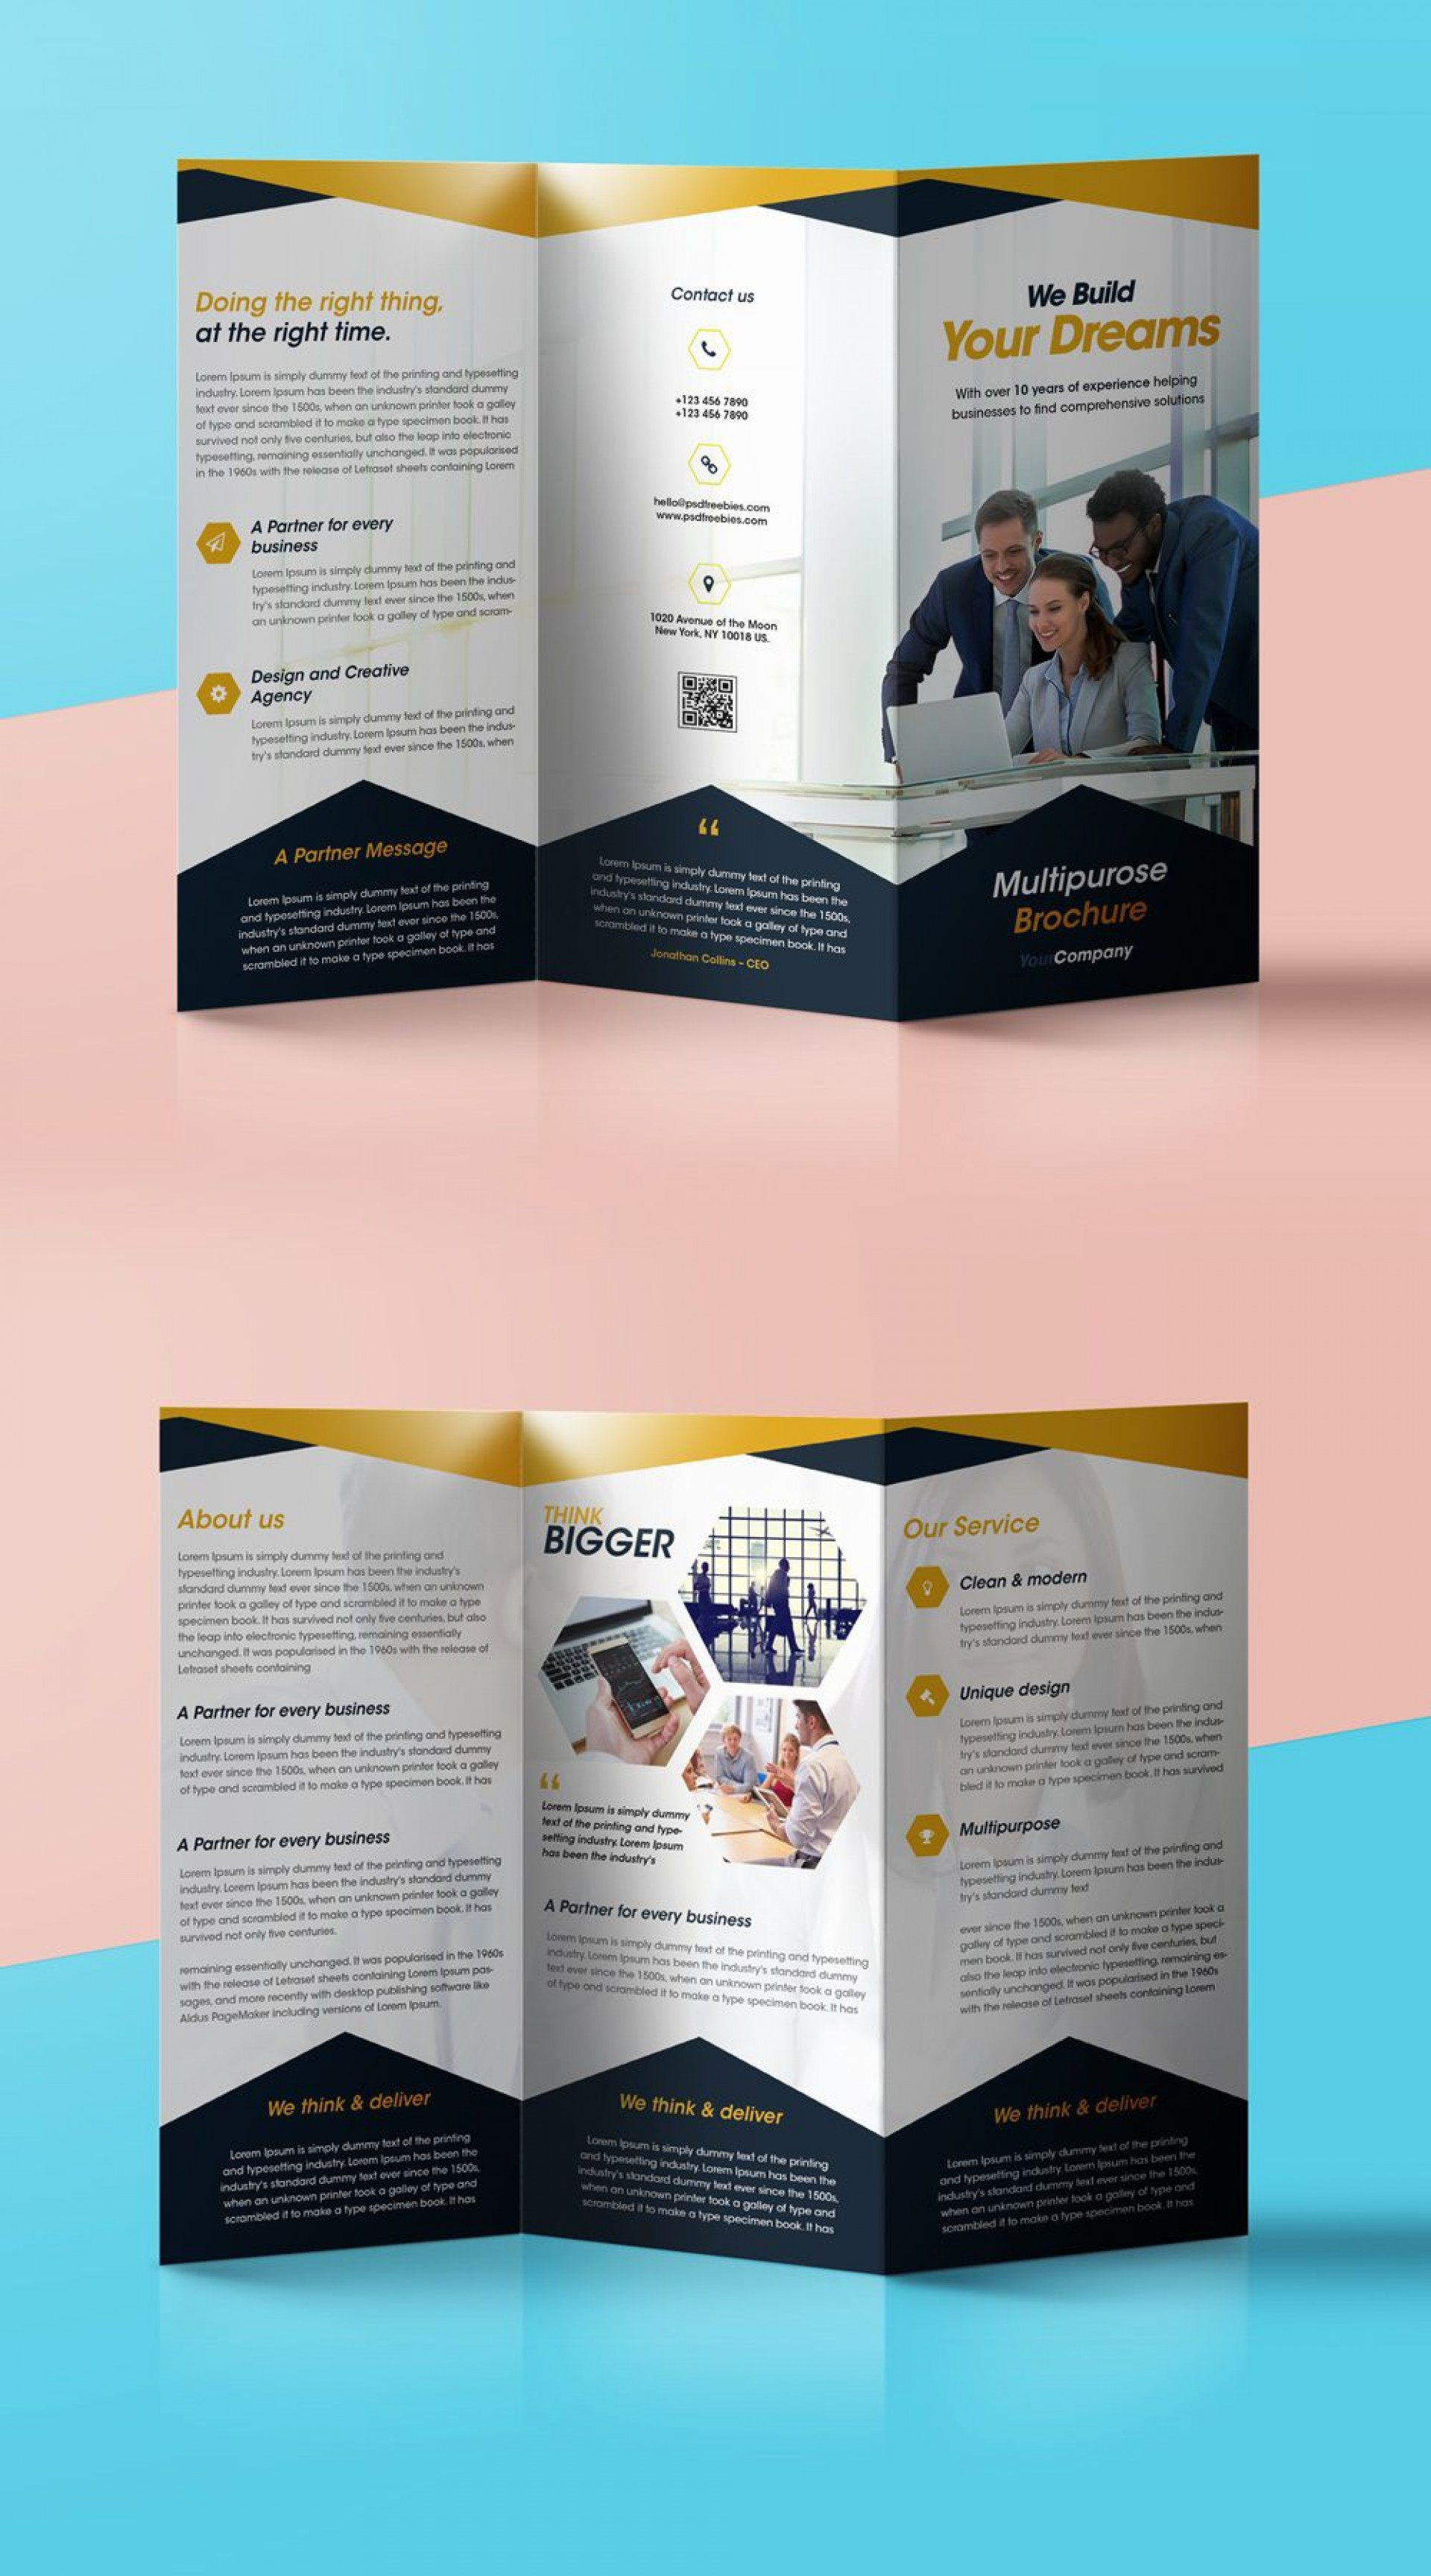 006 Incredible 3 Fold Brochure Template High Def  Templates For Free1920